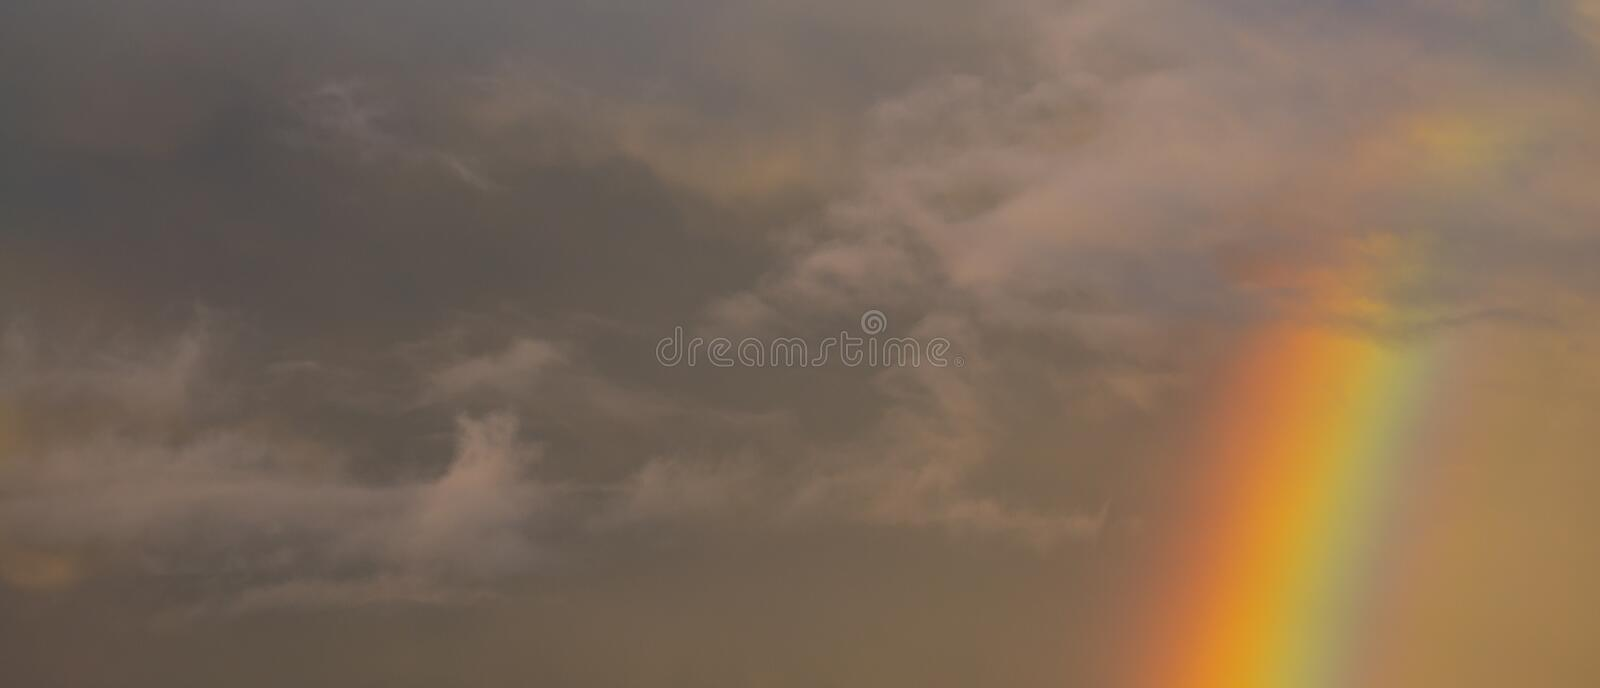 Rainbow at Sunset with a Cloudy Sky. royalty free stock image